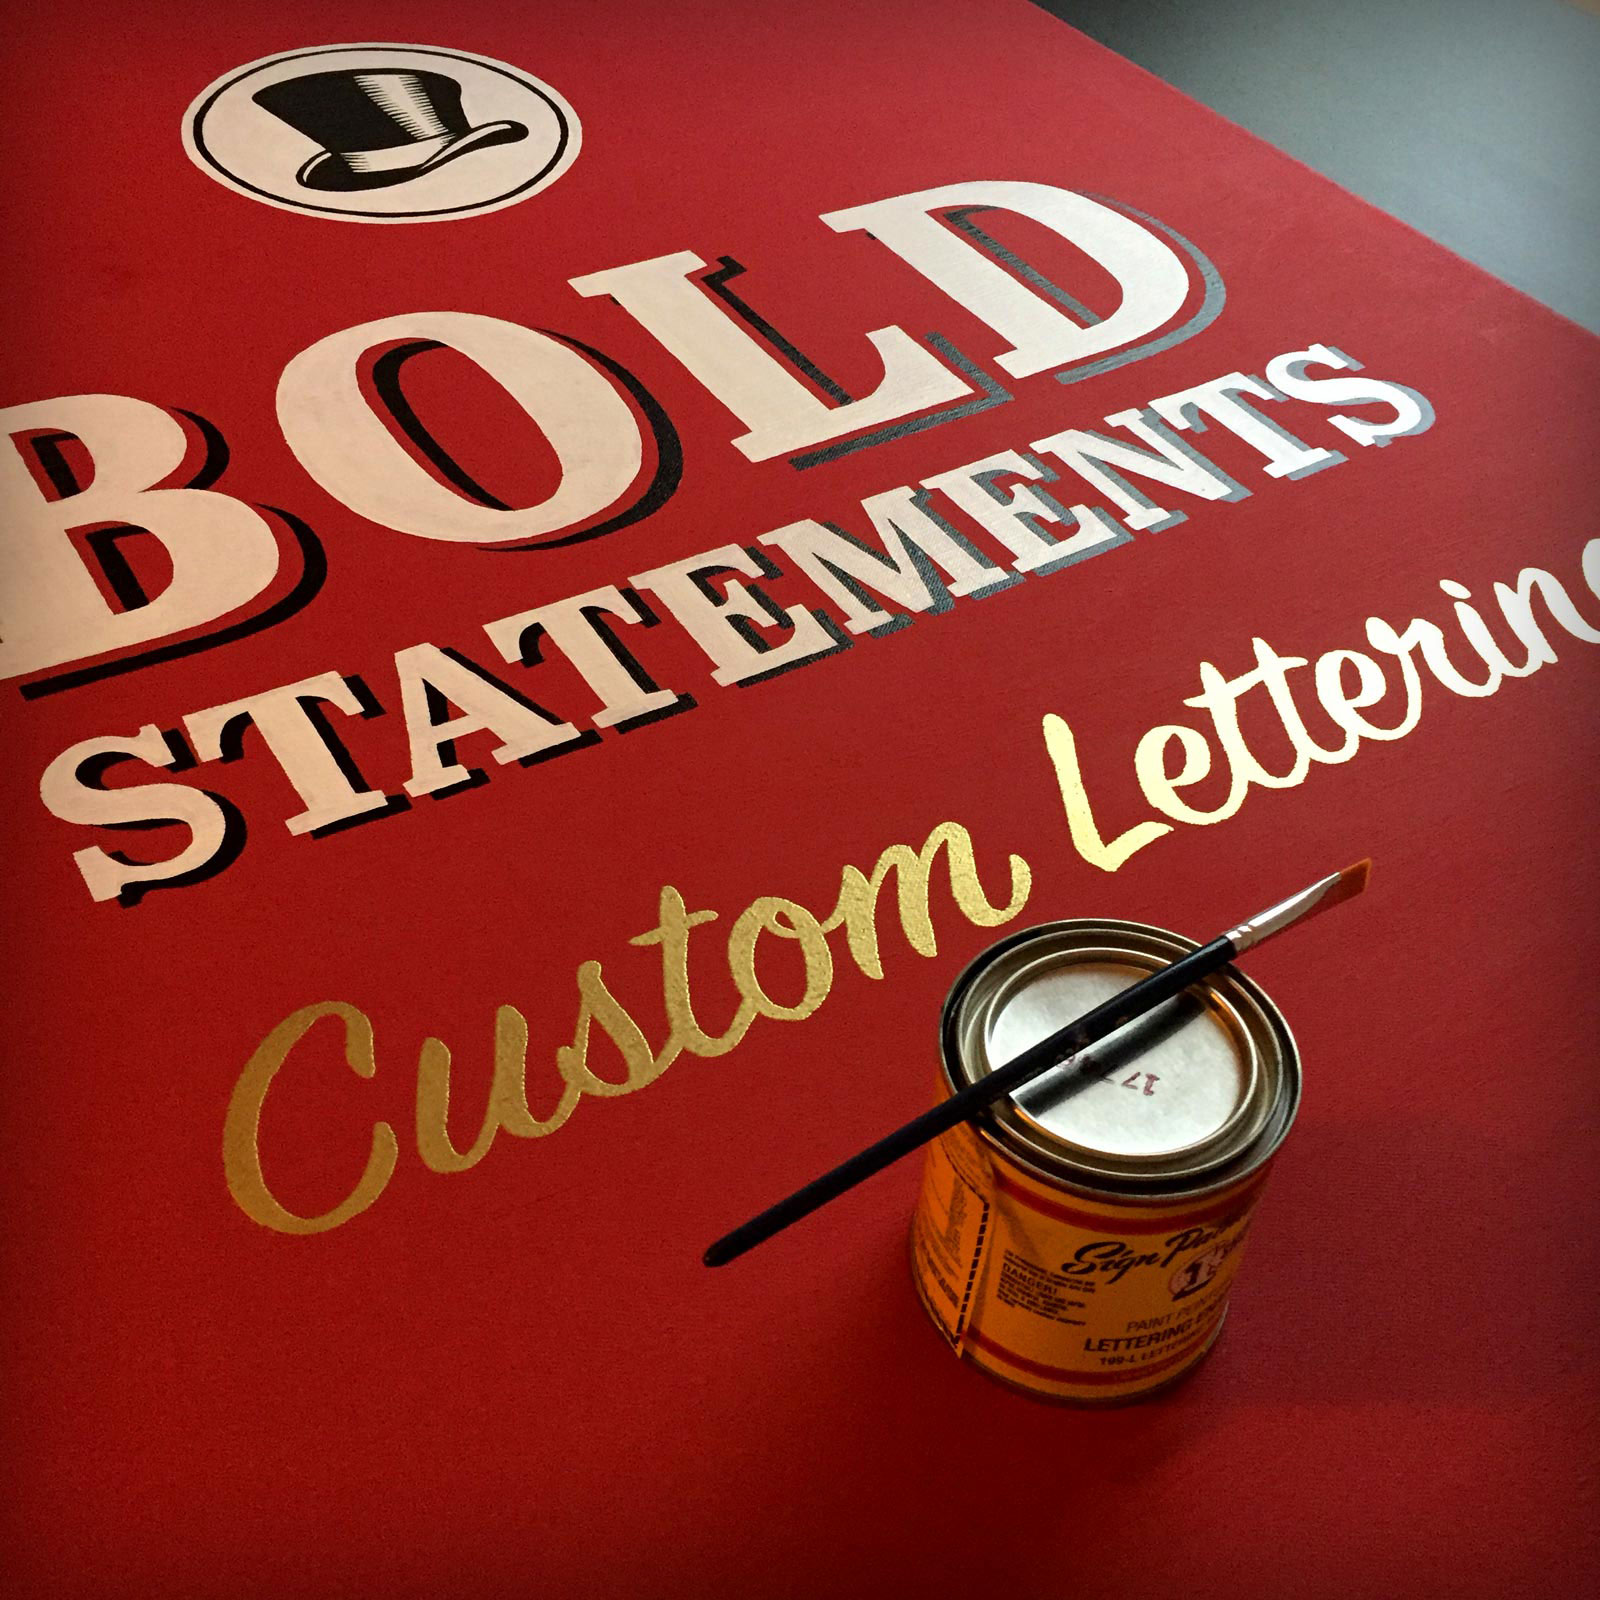 Bold Statements Identity